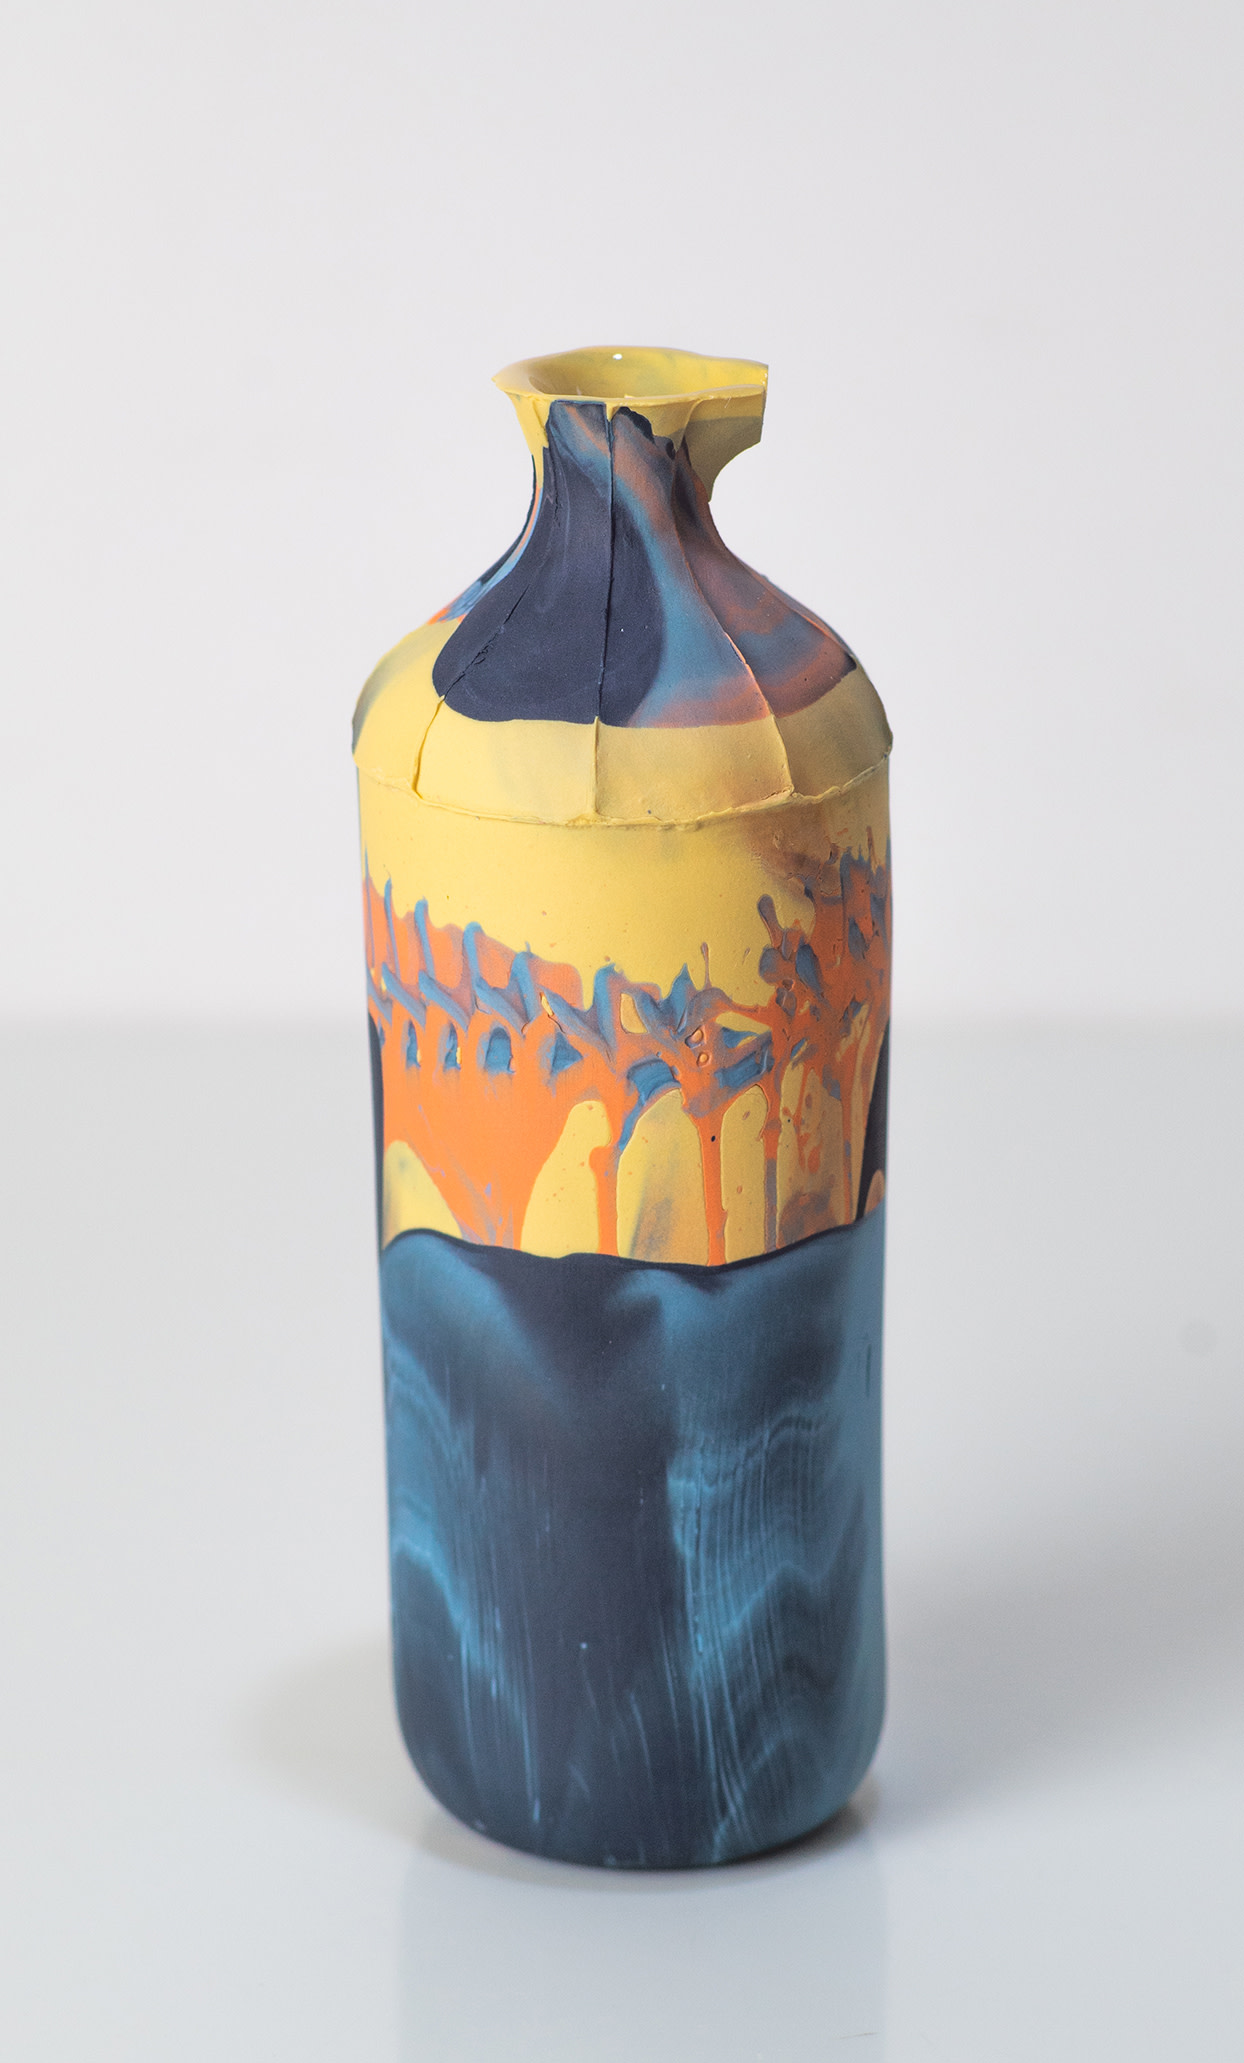 "<span class=""link fancybox-details-link""><a href=""/artists/219-james-pegg/works/6082-james-pegg-tall-bottle-2019/"">View Detail Page</a></span><div class=""artist""><strong>James Pegg</strong></div> <div class=""title""><em>Tall Bottle</em>, 2019</div> <div class=""medium"">action-cast stained porcelain with glazed interior</div> <div class=""dimensions"">h 17cm, dia 6 cm</div><div class=""copyright_line"">OwnArt: £ 12 x 10 Months, 0% APR </div>"